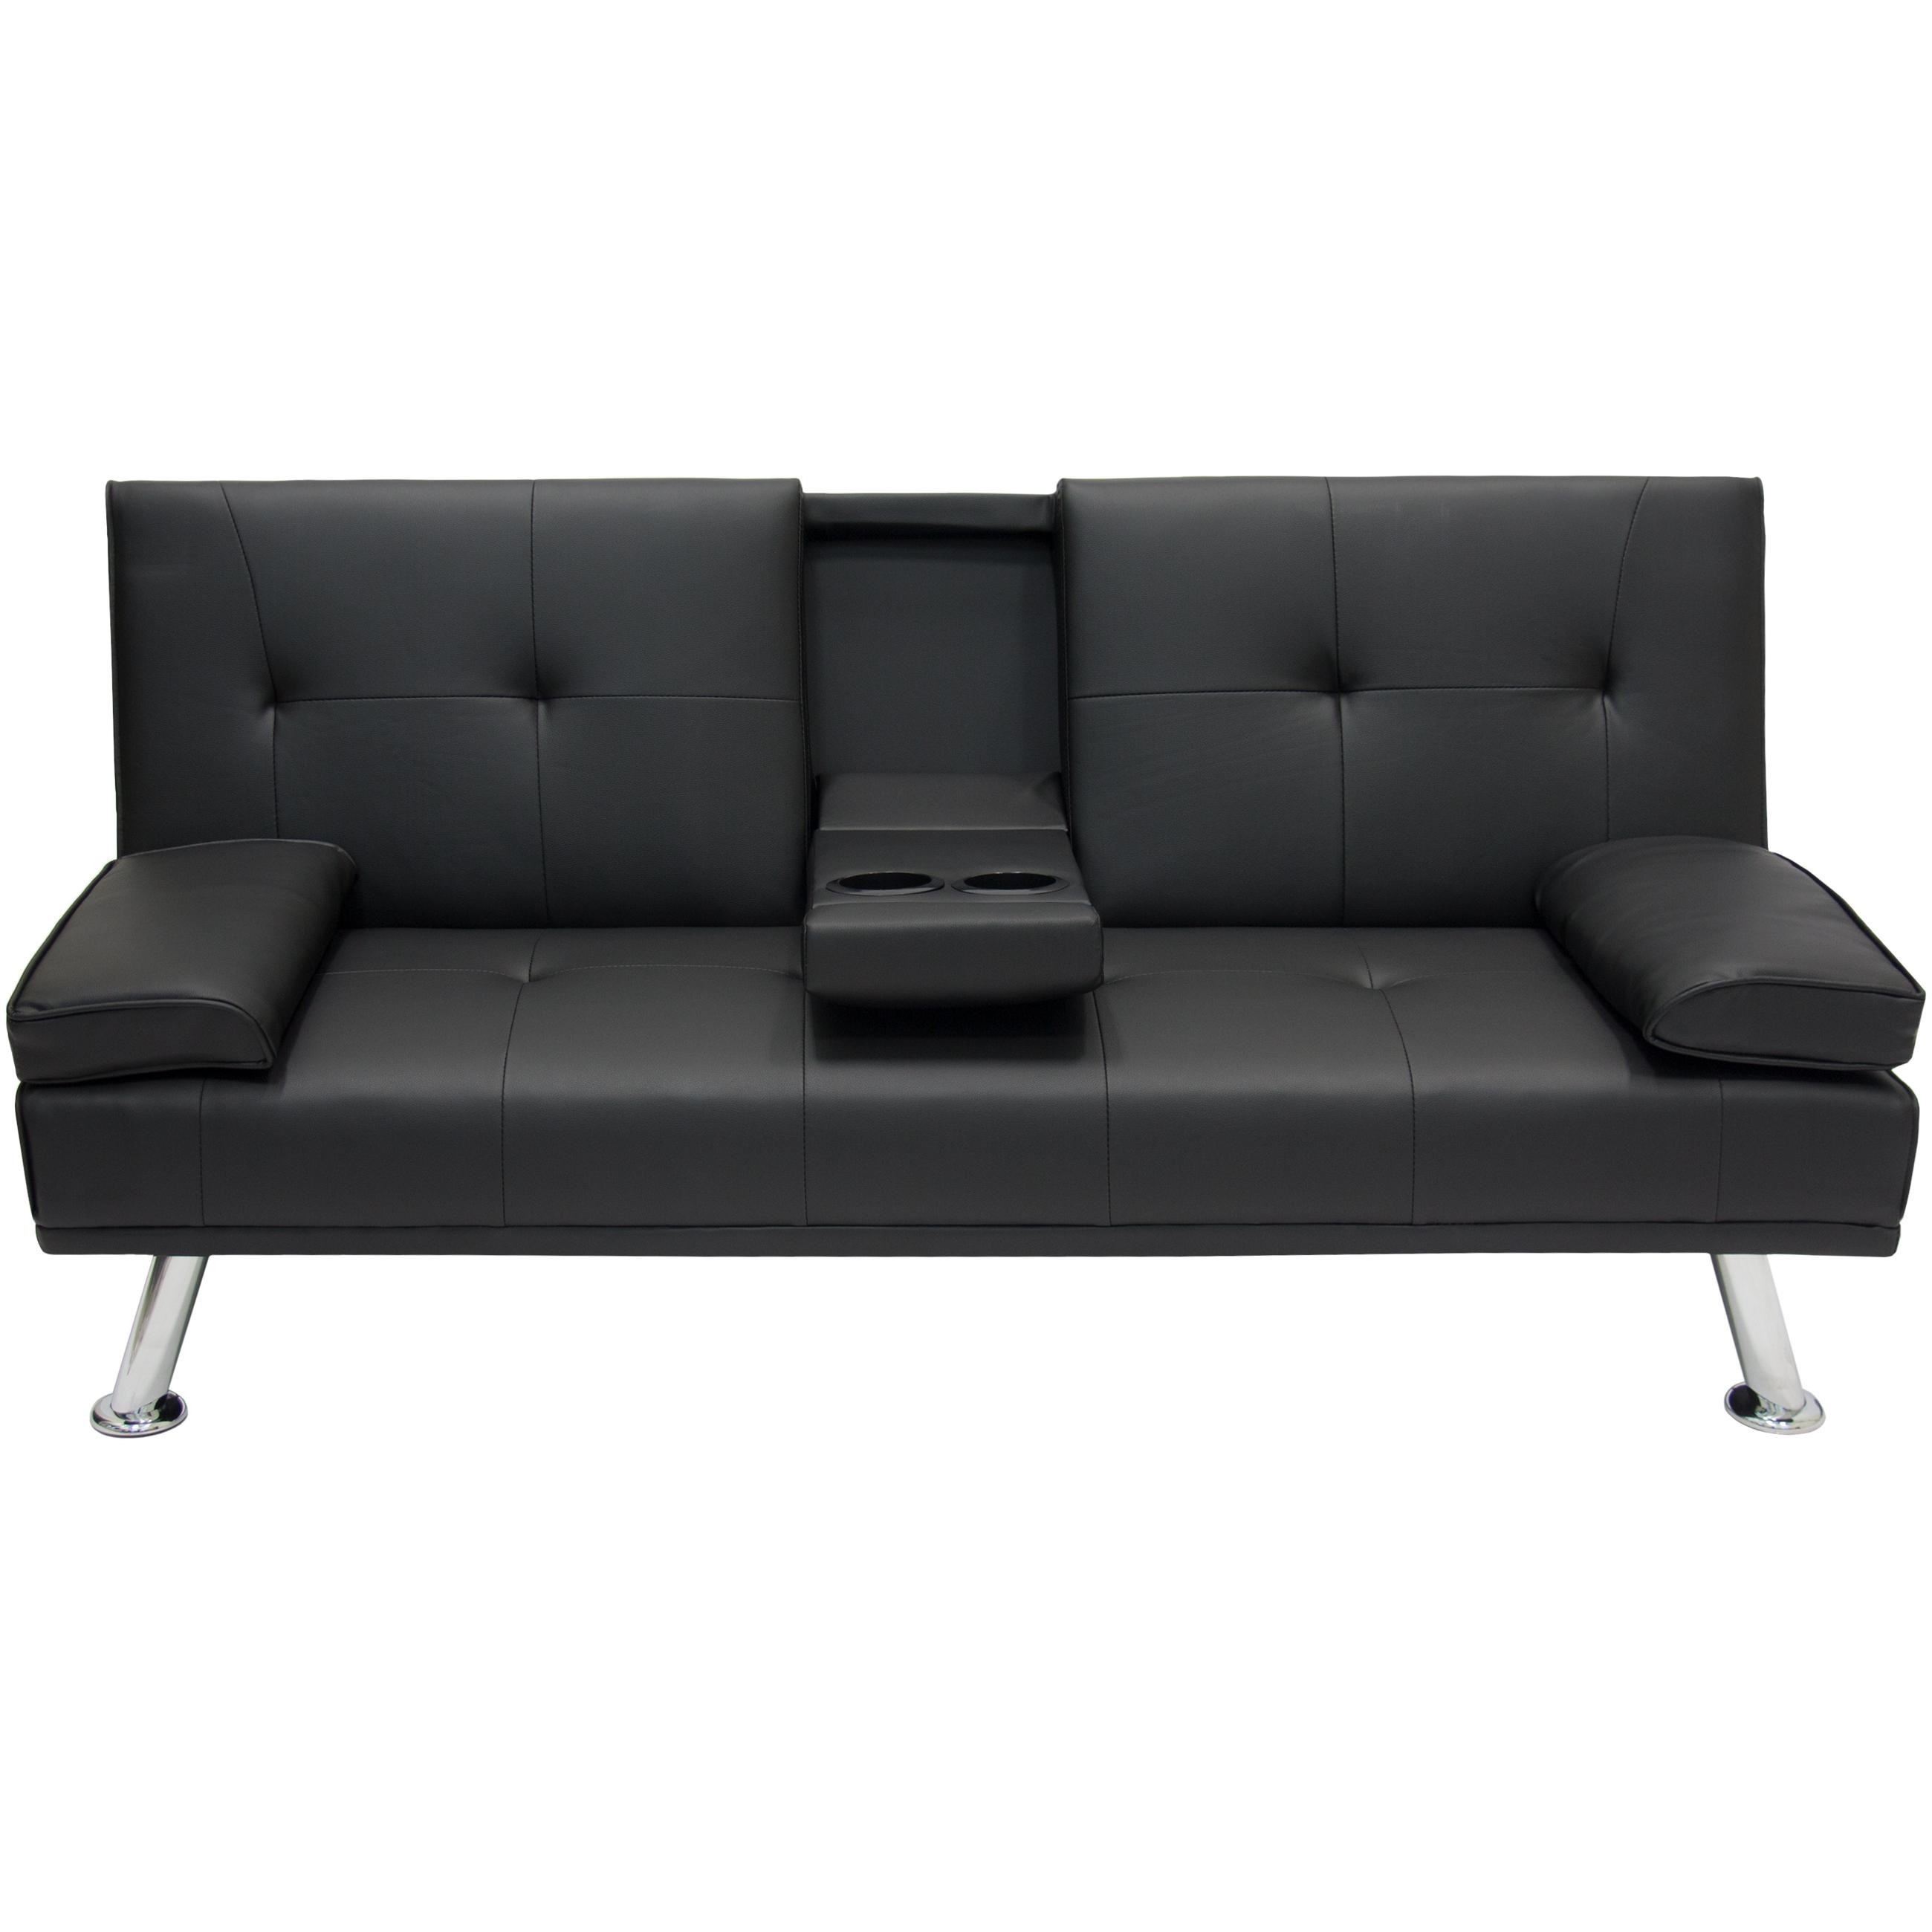 Sofa Bed – Ikea, New, Used, Loveseat, Modern, Queen | Ebay With Regard To Fold Up Sofa Chairs (Image 18 of 22)